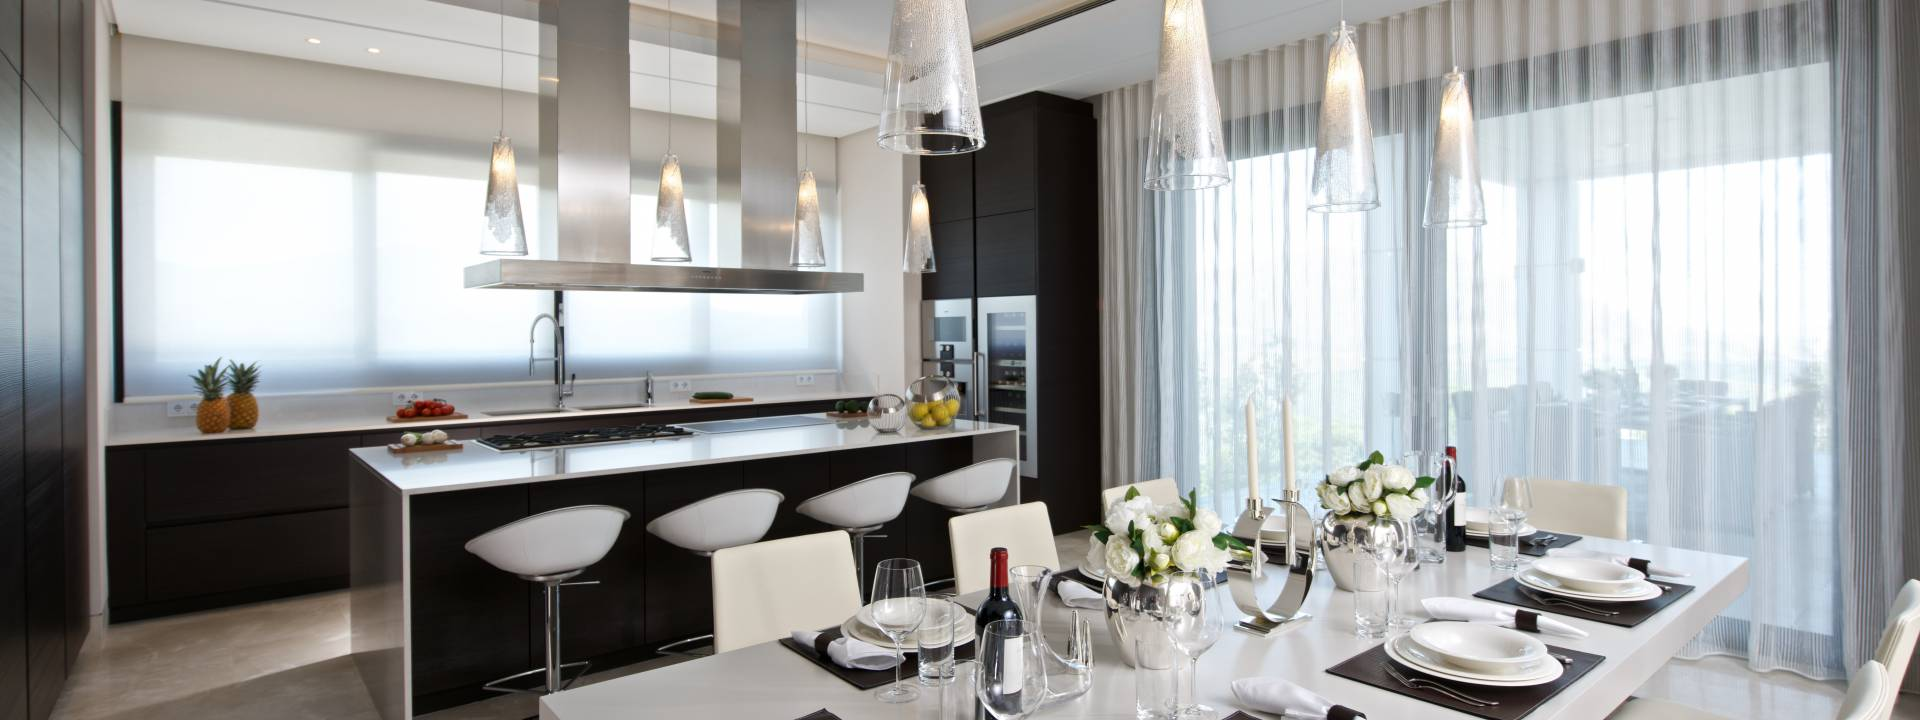 Modern Holiday Villa. Exclusive luxurious kitchen. Taylor interiors.